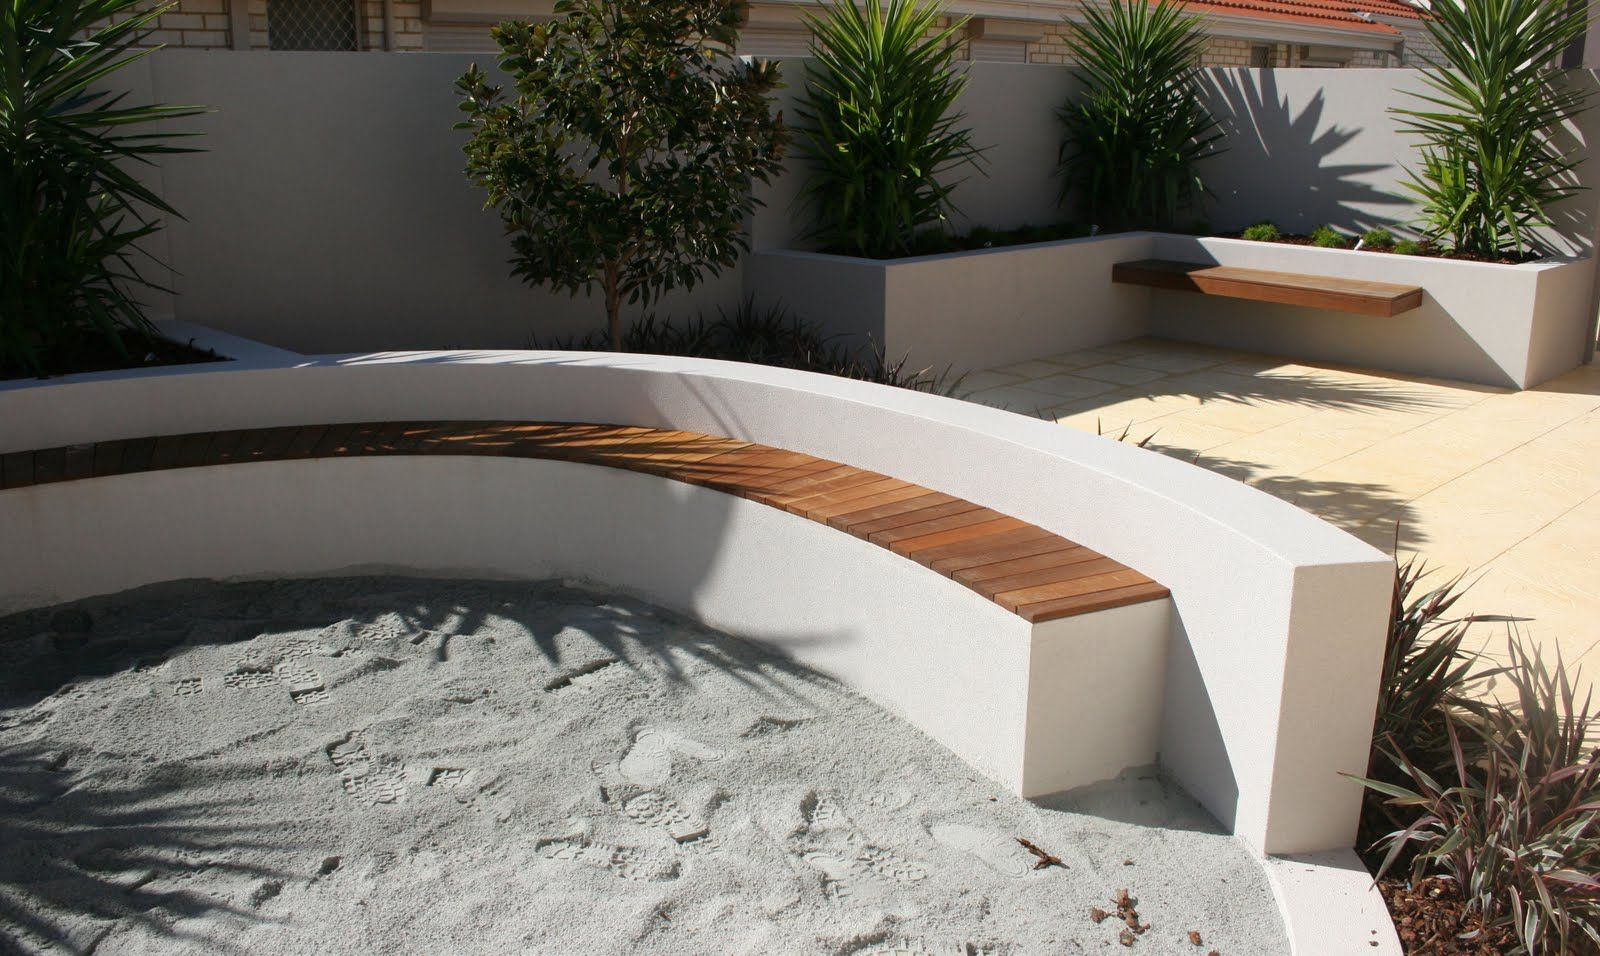 Landscape Amp Amp Garden Design In Perth Mandurah And South West West Australia Backyard Seating Curved Patio Wall Seating